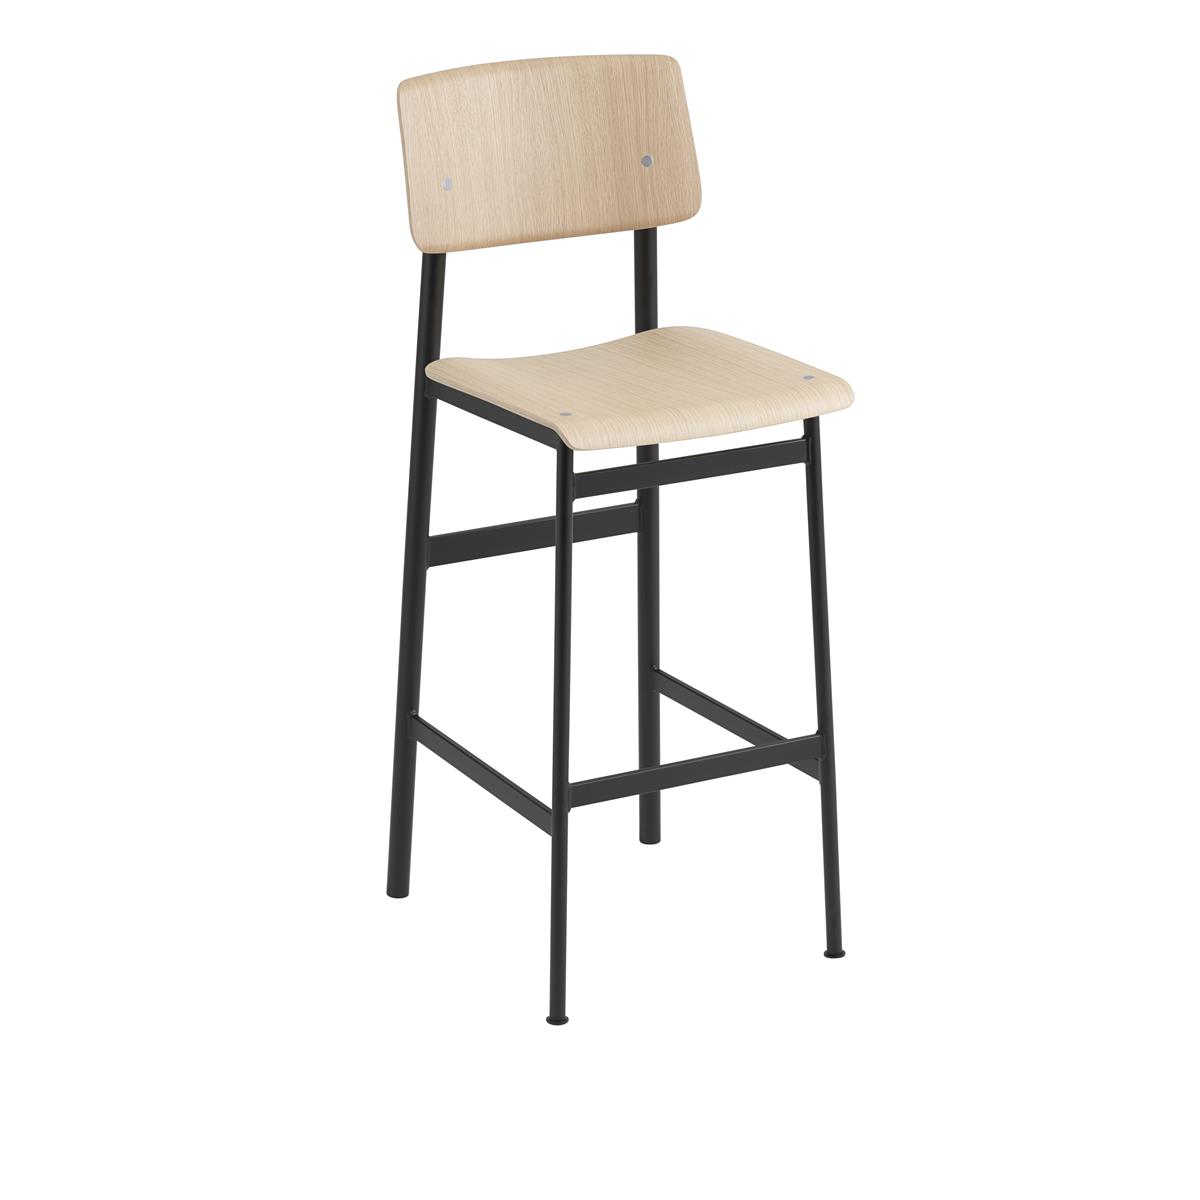 Loft Bar Stool H75 - Black & Oak